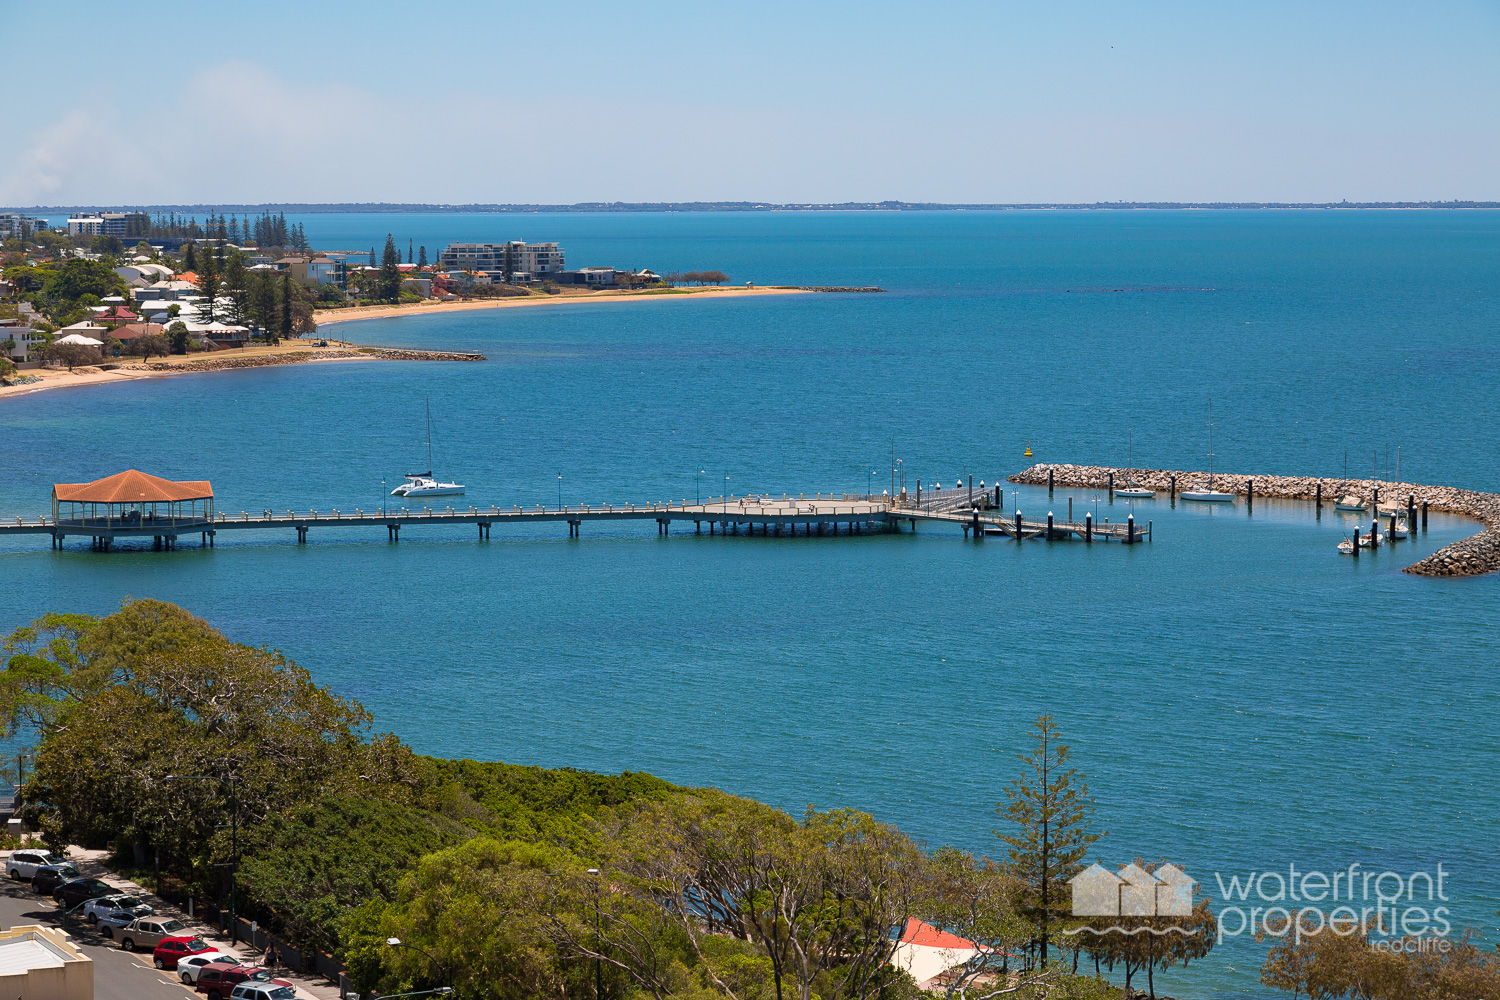 1205/99 Marine Parade, REDCLIFFE QLD 4020 4